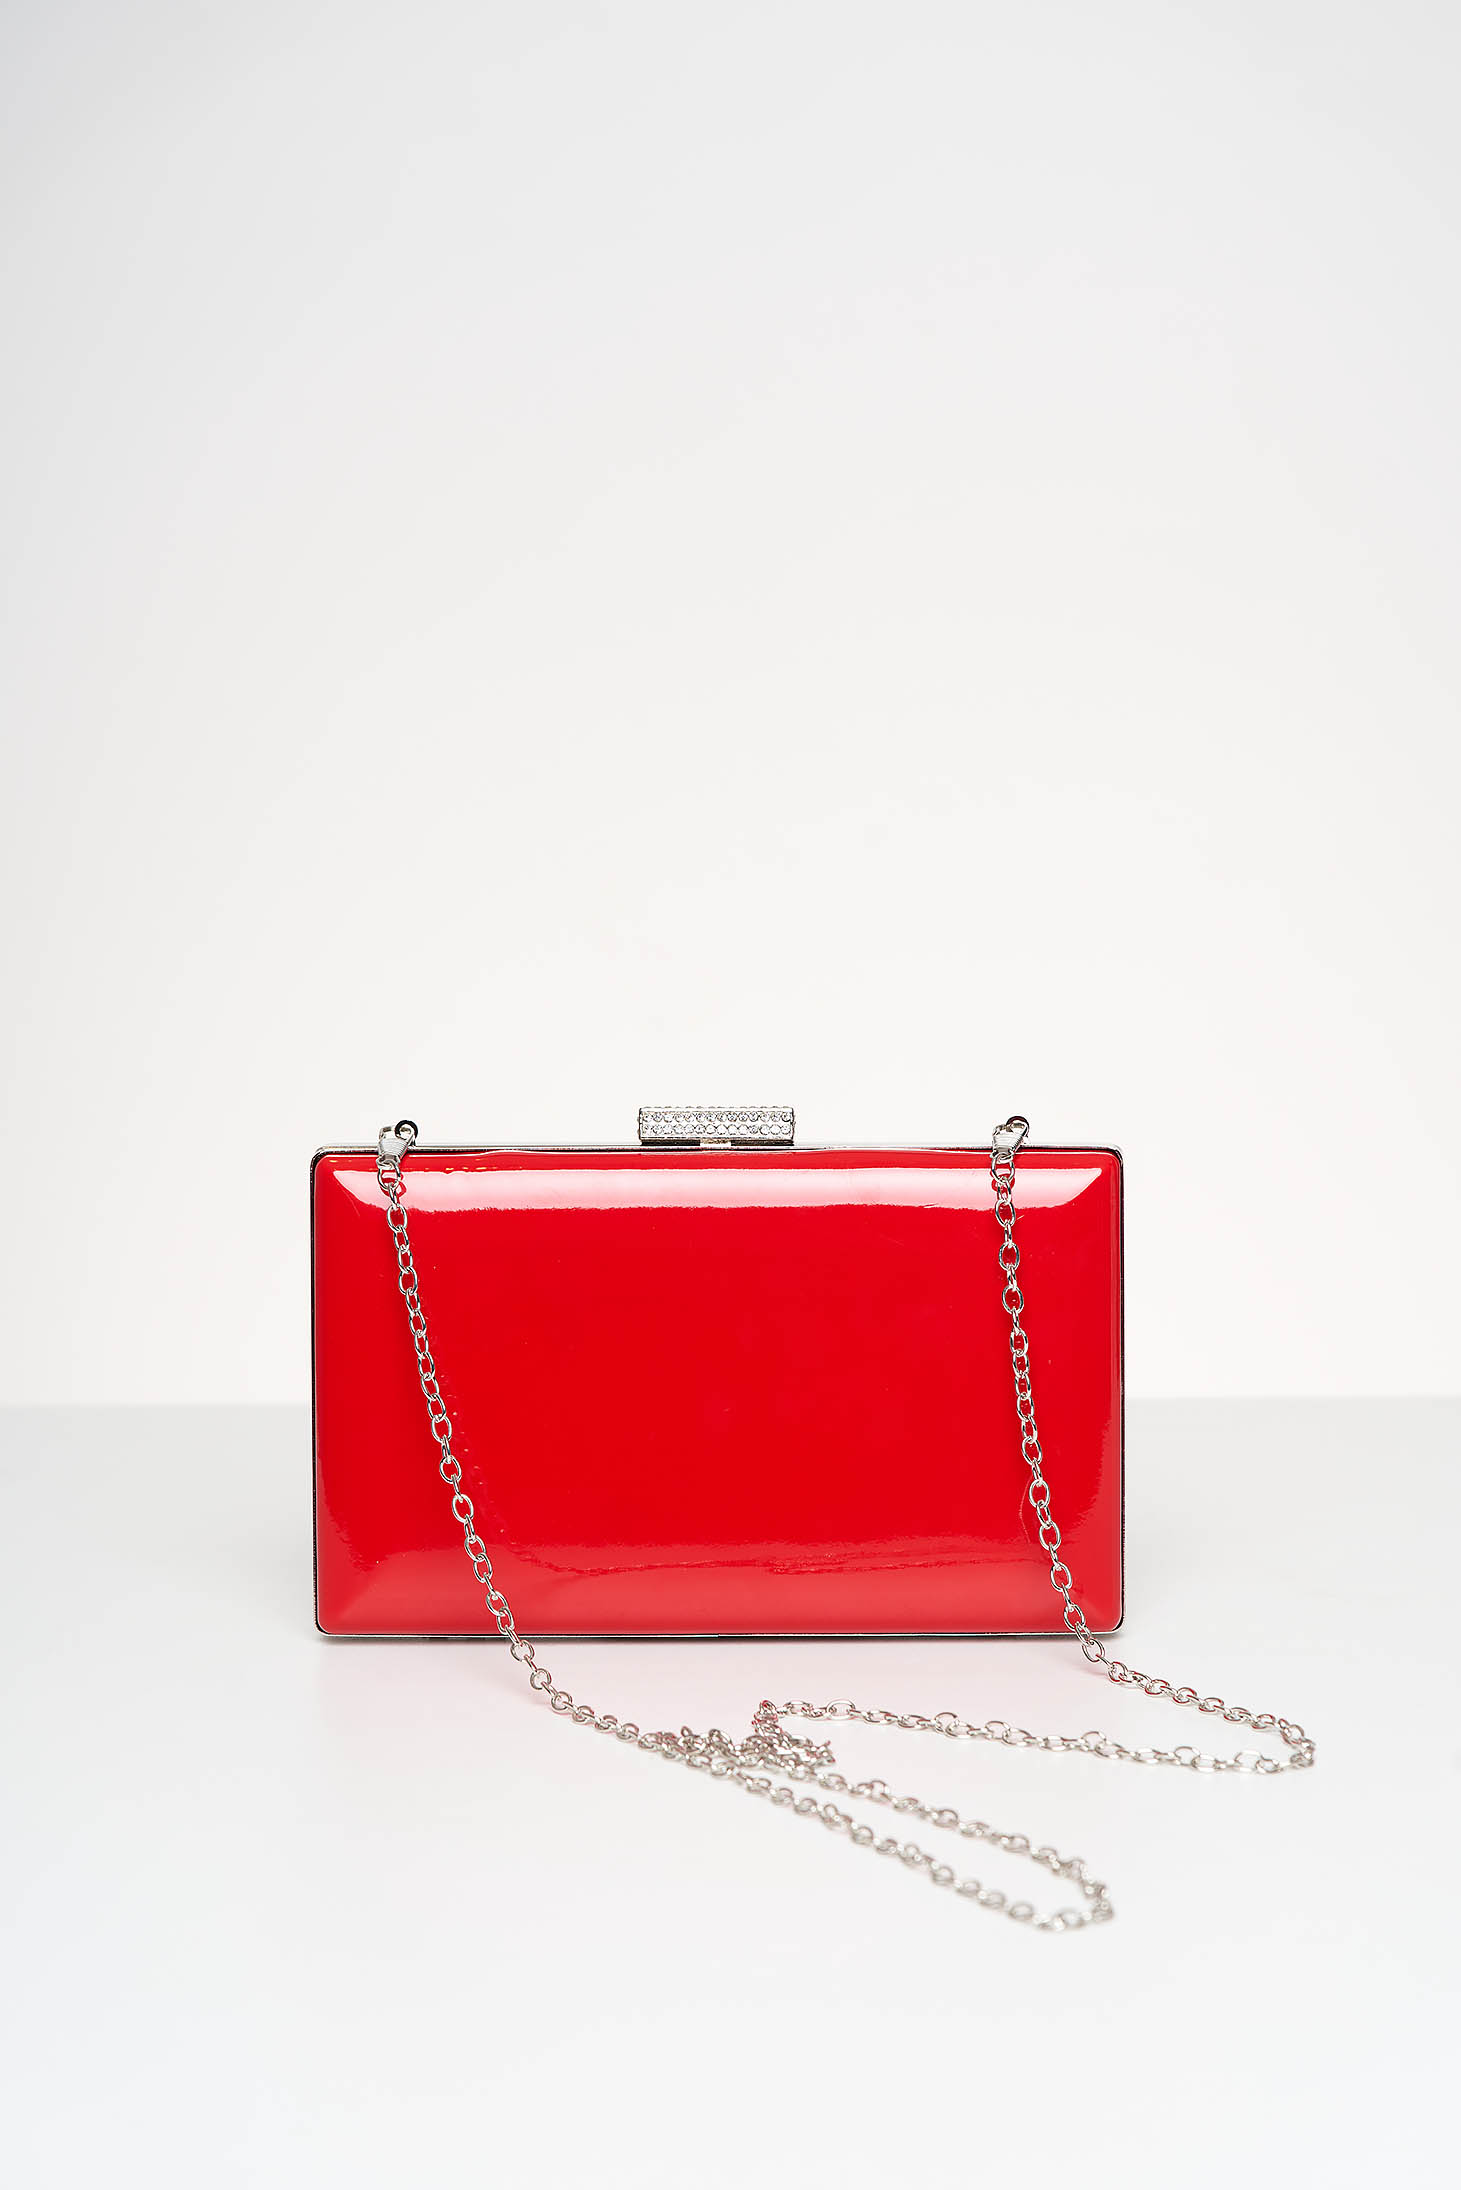 Red bag occasional lacquer fabric with crystal embellished details